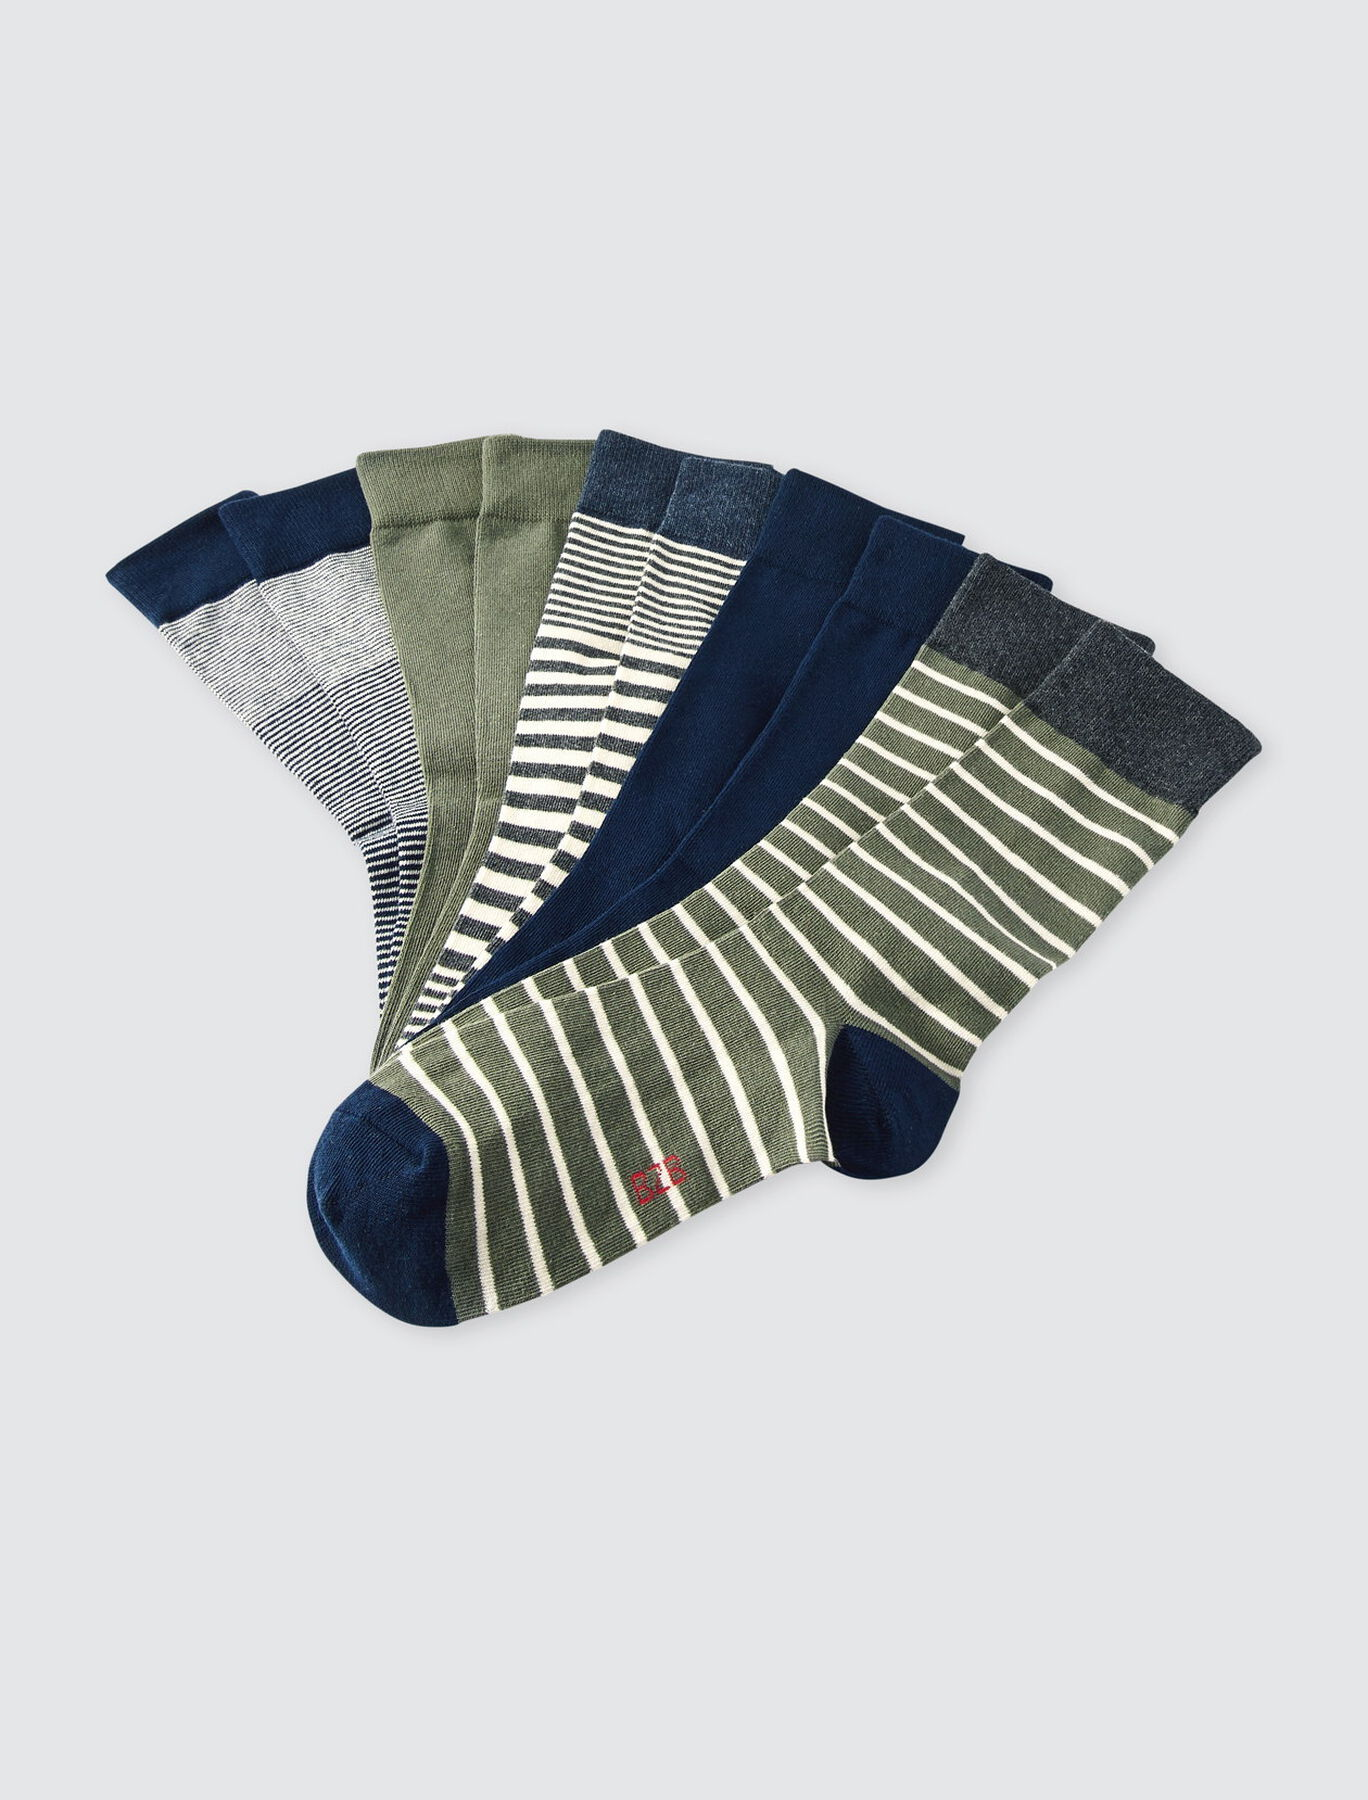 Chaussettes *5 rayées